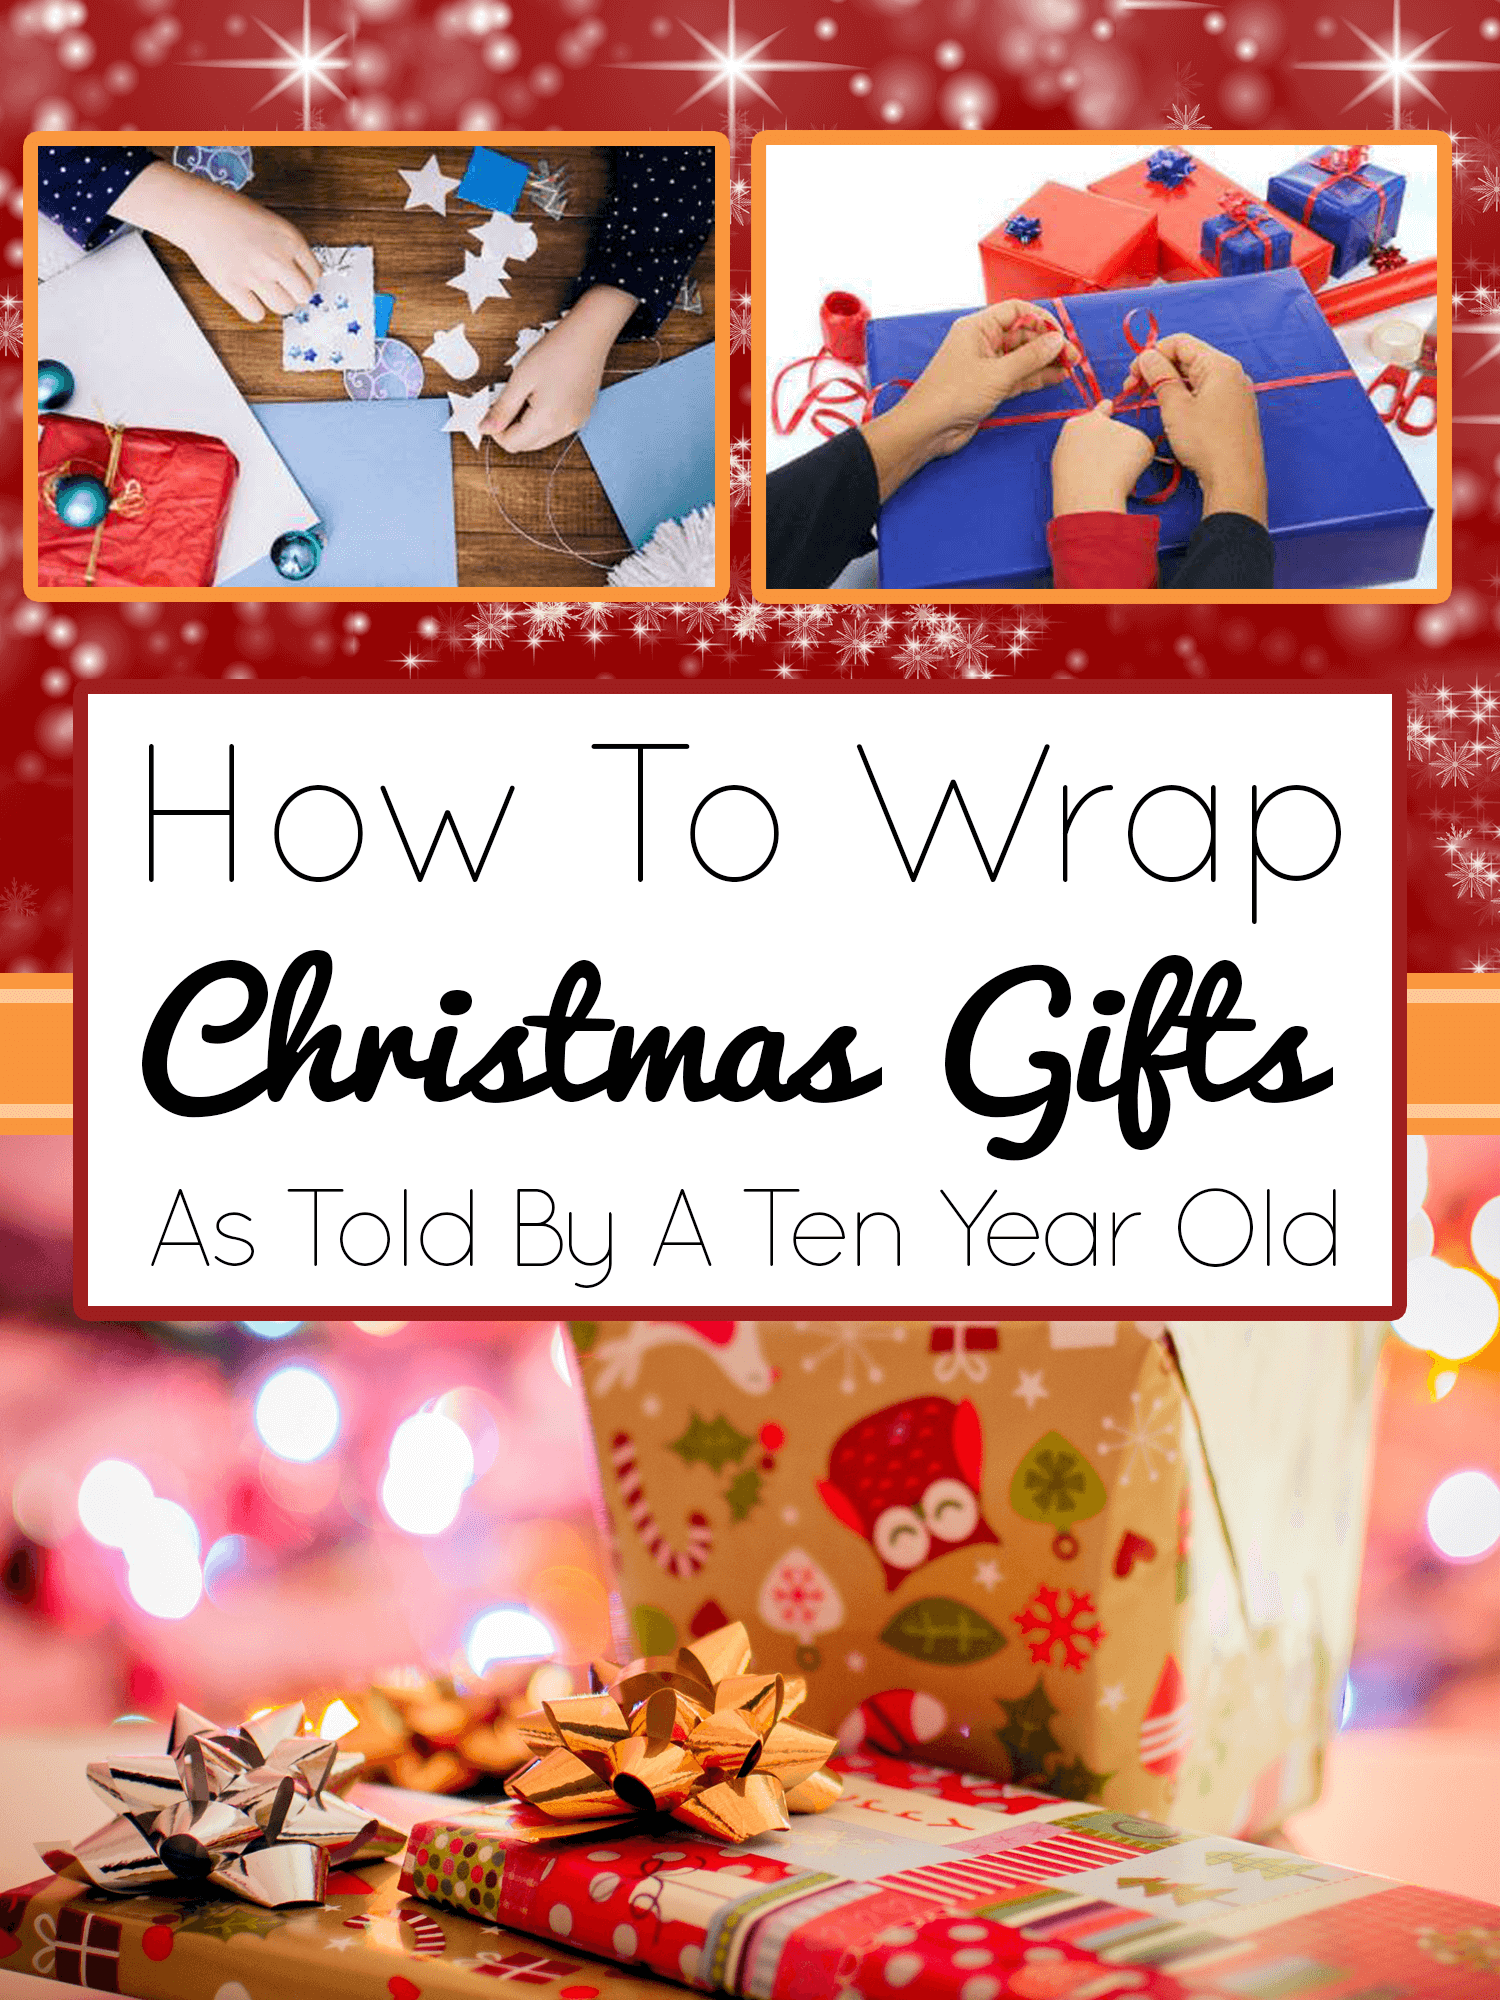 How To Wrap Christmas Gifts | Imagine Forest